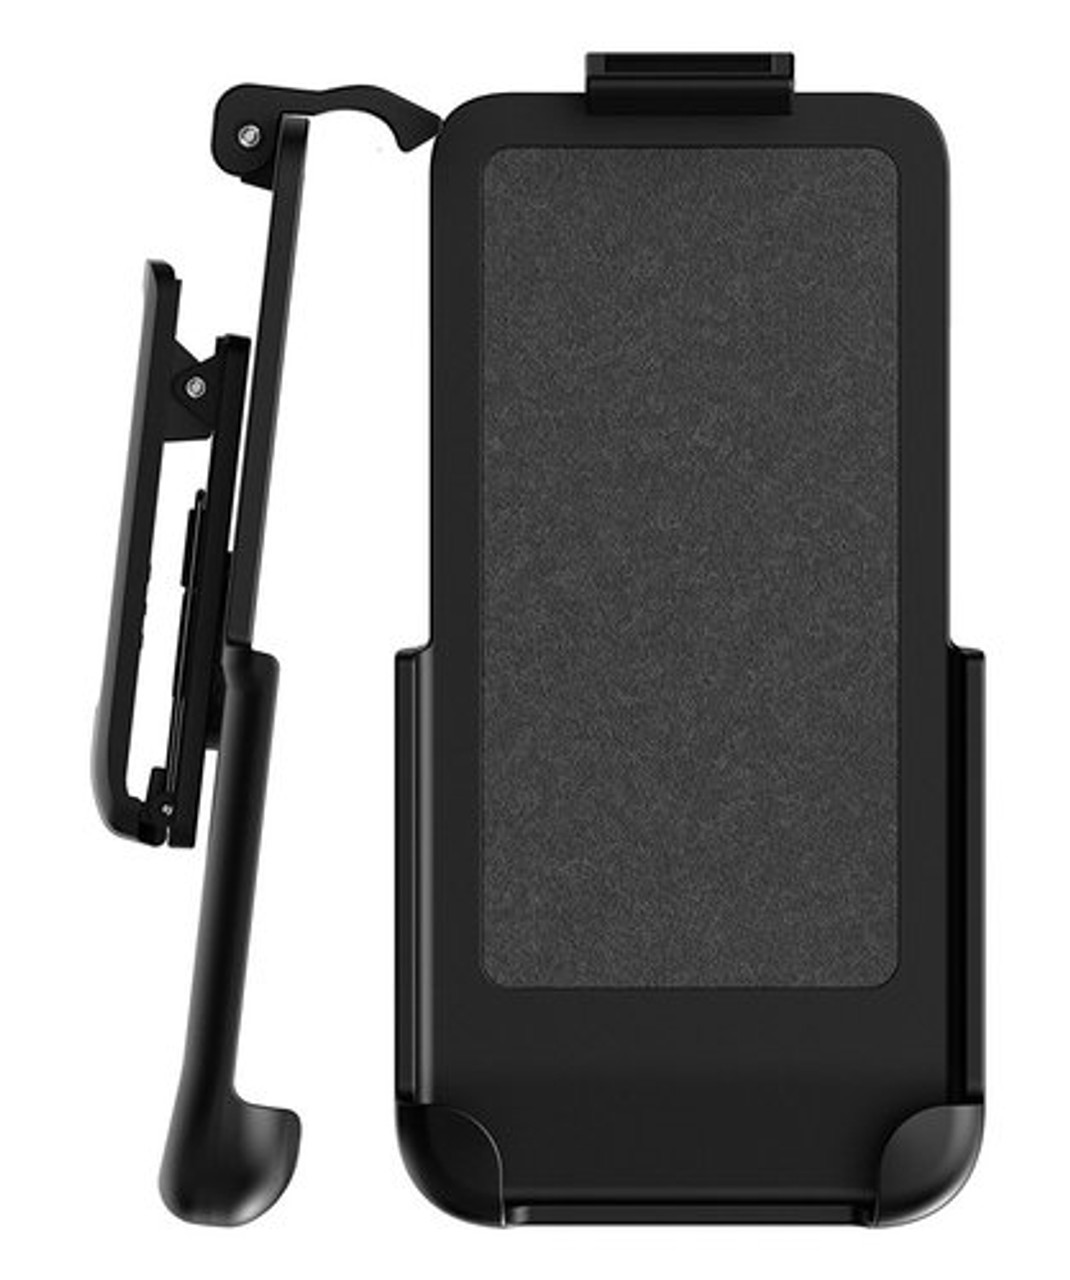 buy online 6bf9f 5d732 Encased OtterBox Belt Clip Holster for OtterBox Commuter iPhone 8+/7+ Plus  (case not included)